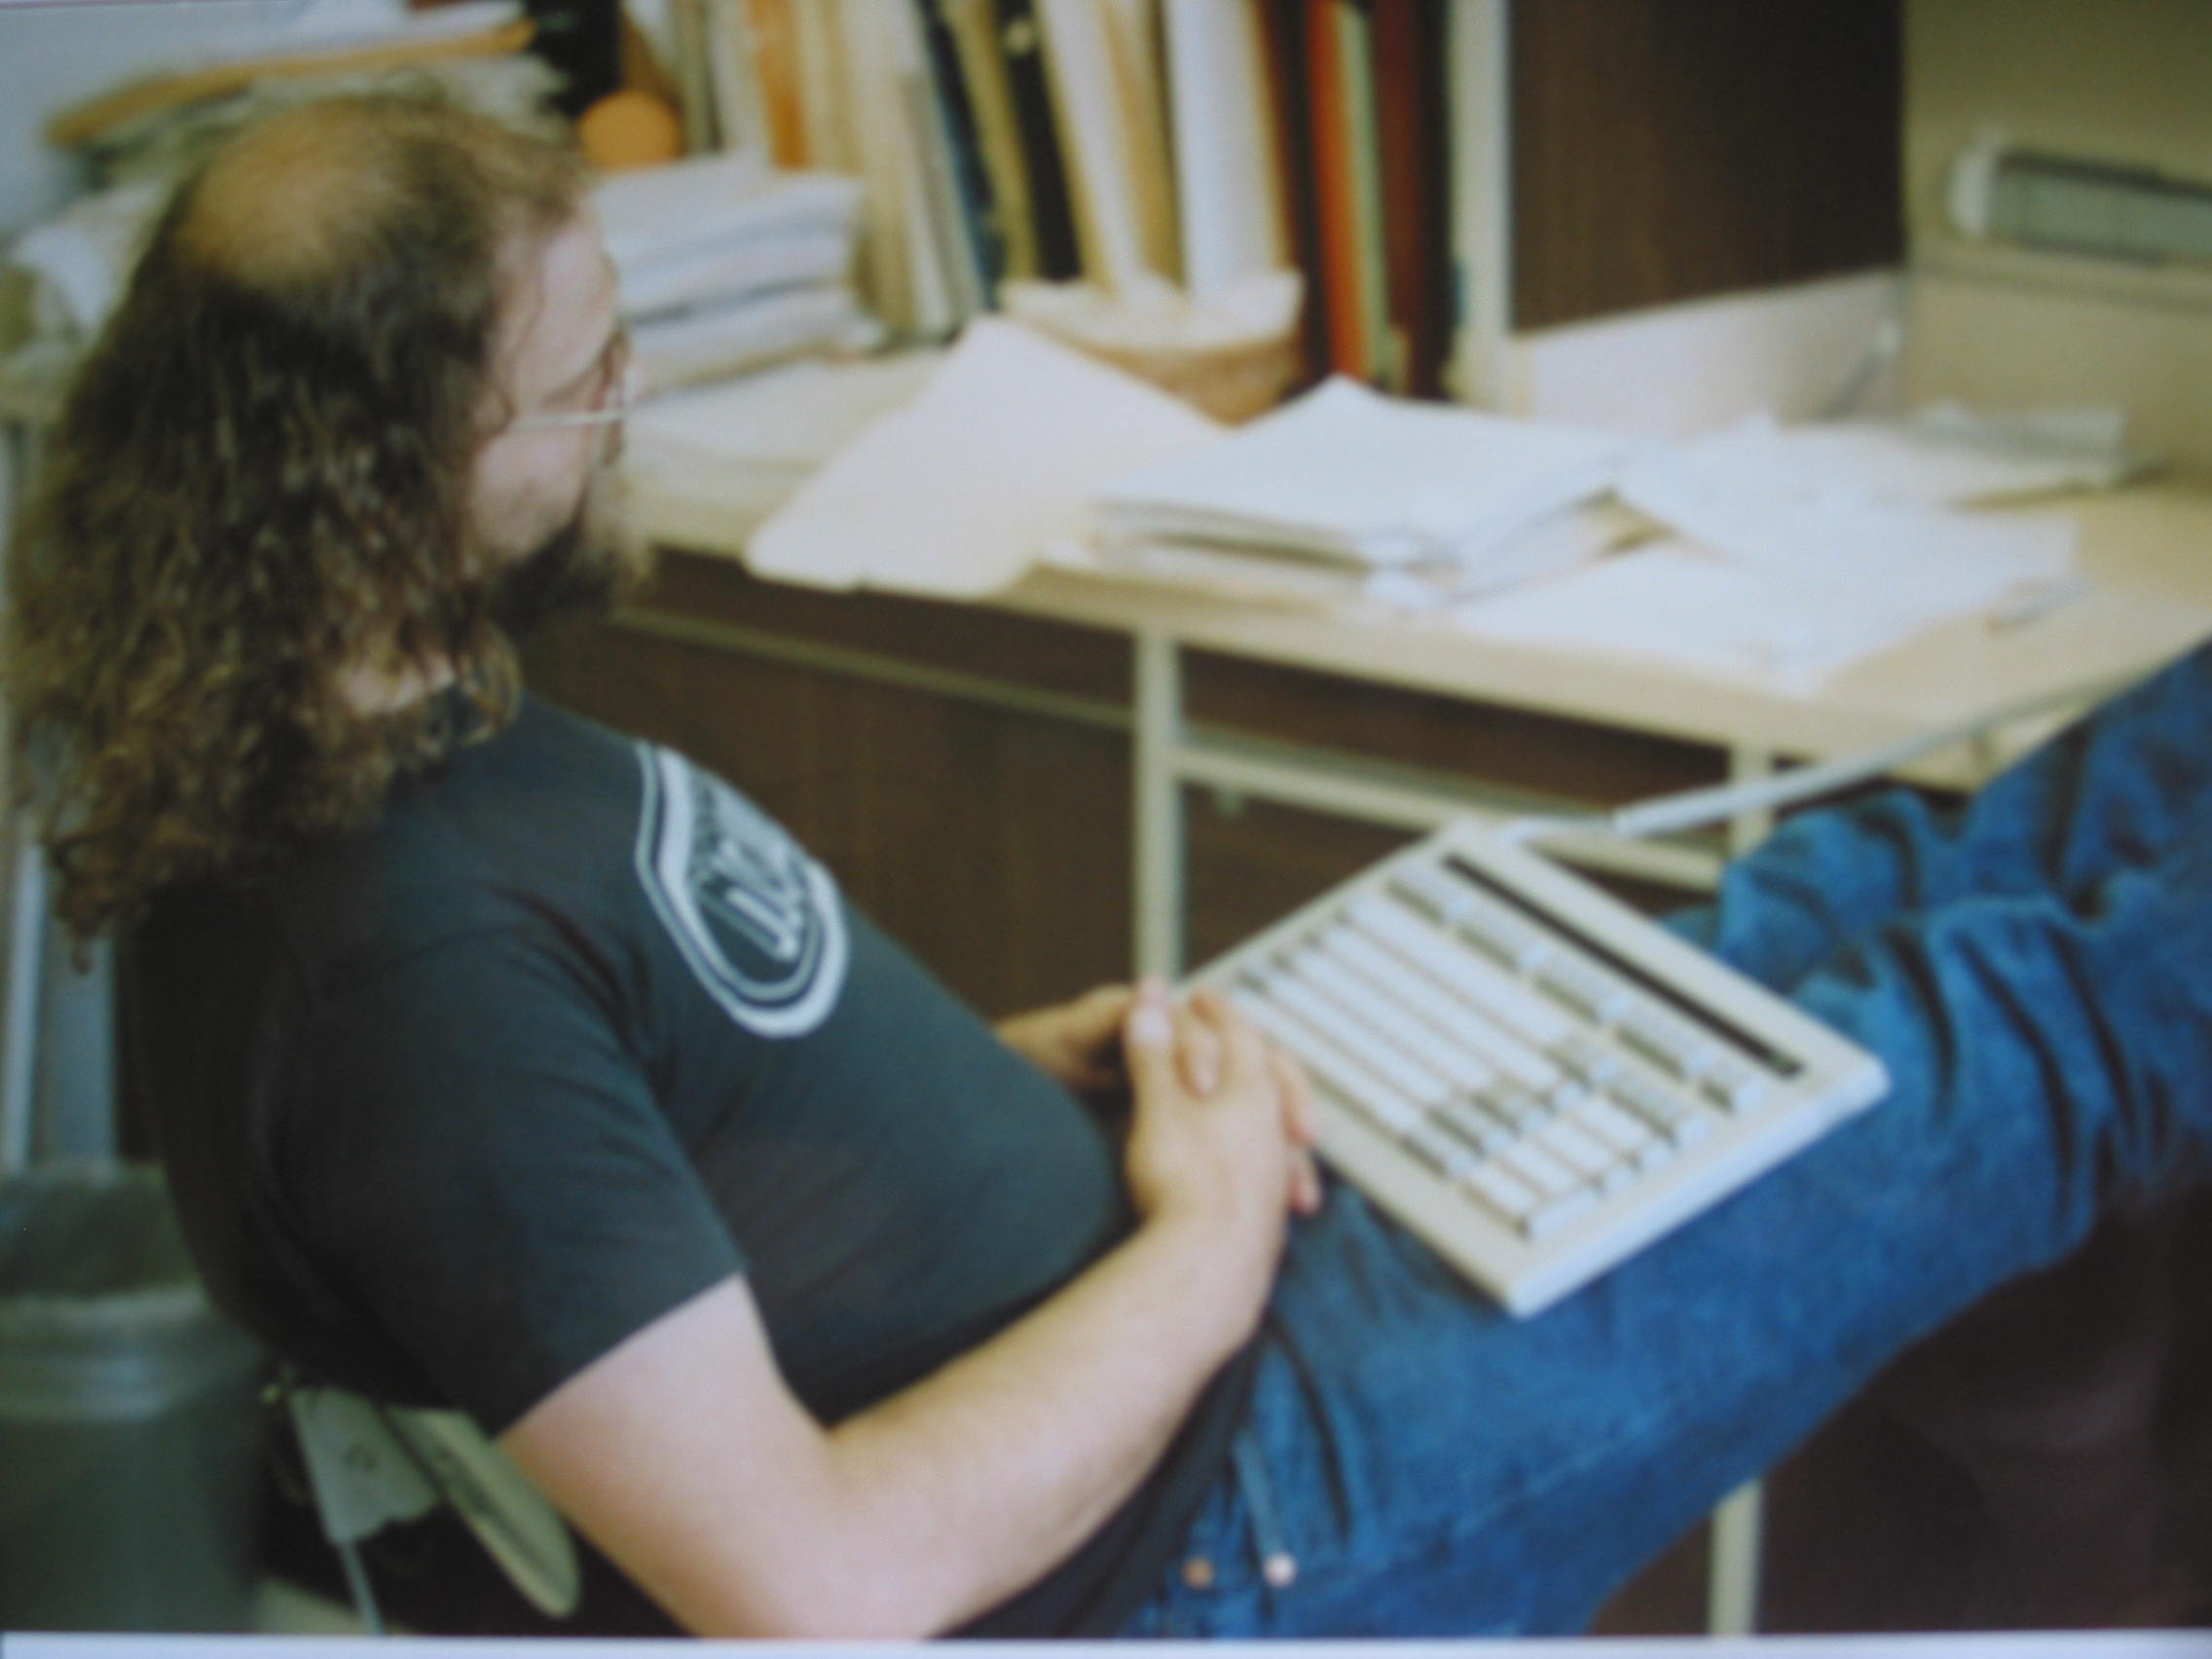 Paul Butler at SFSU circa 1988